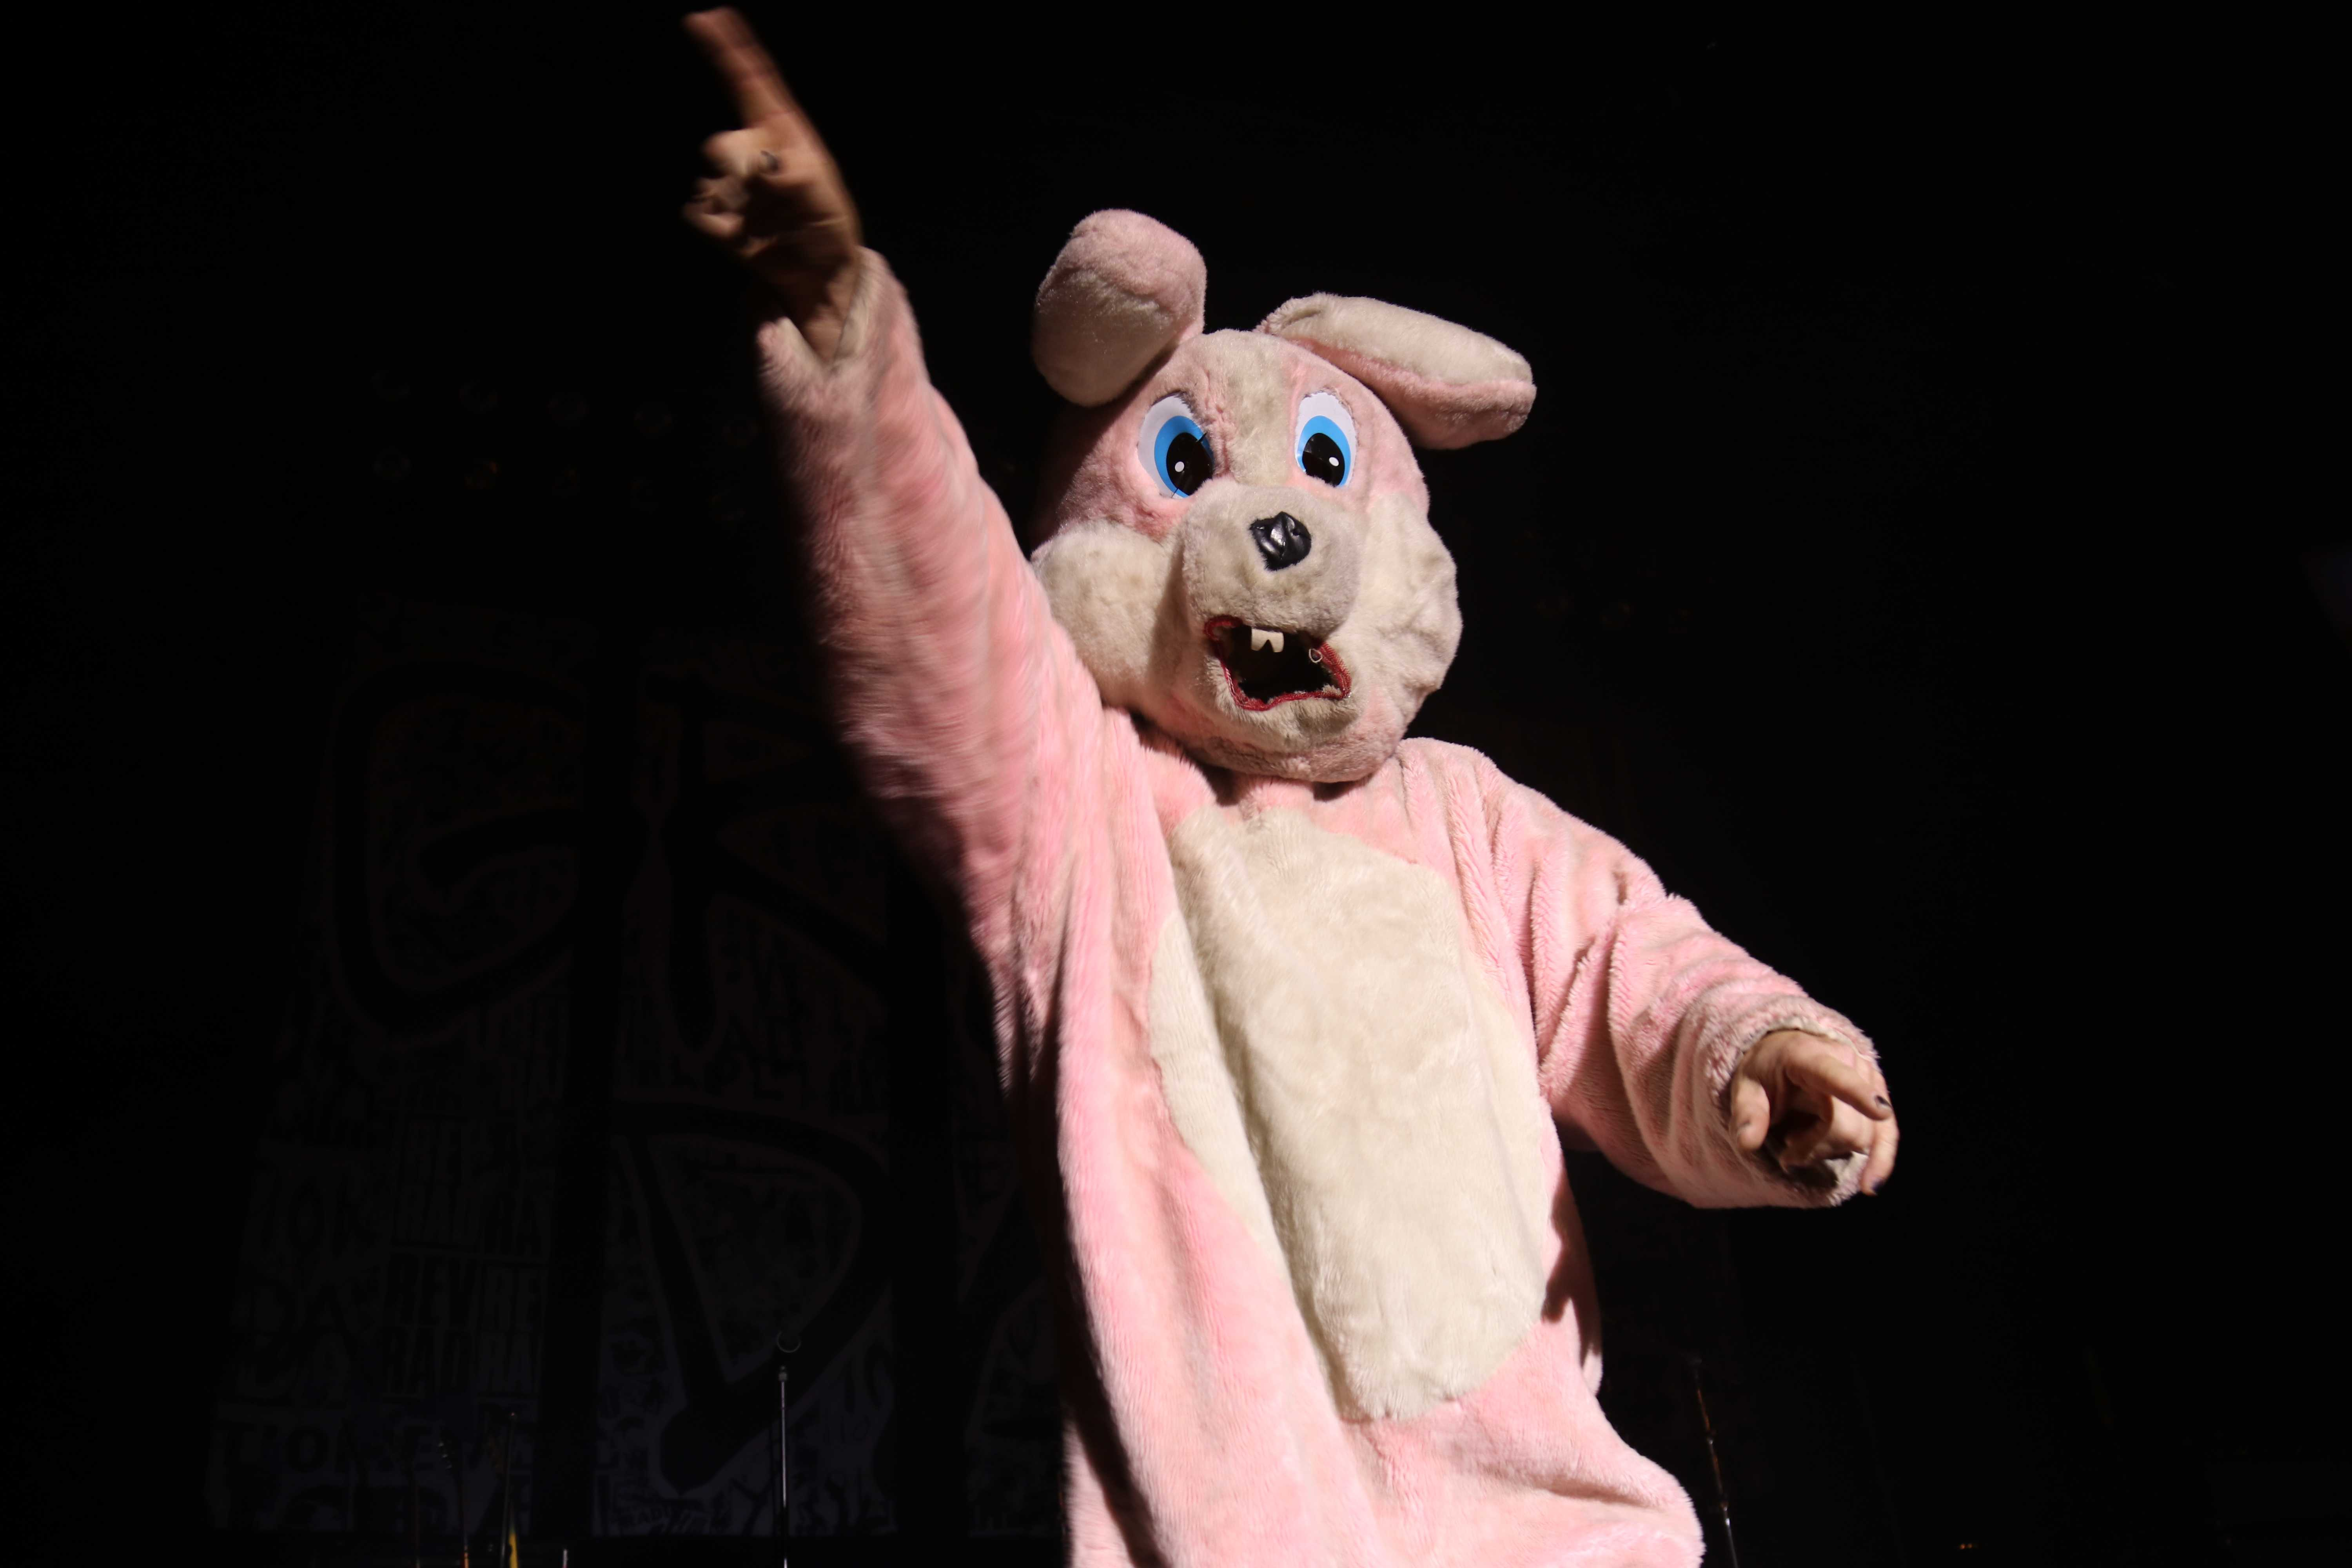 Someone in a pink bunny costume is pictured